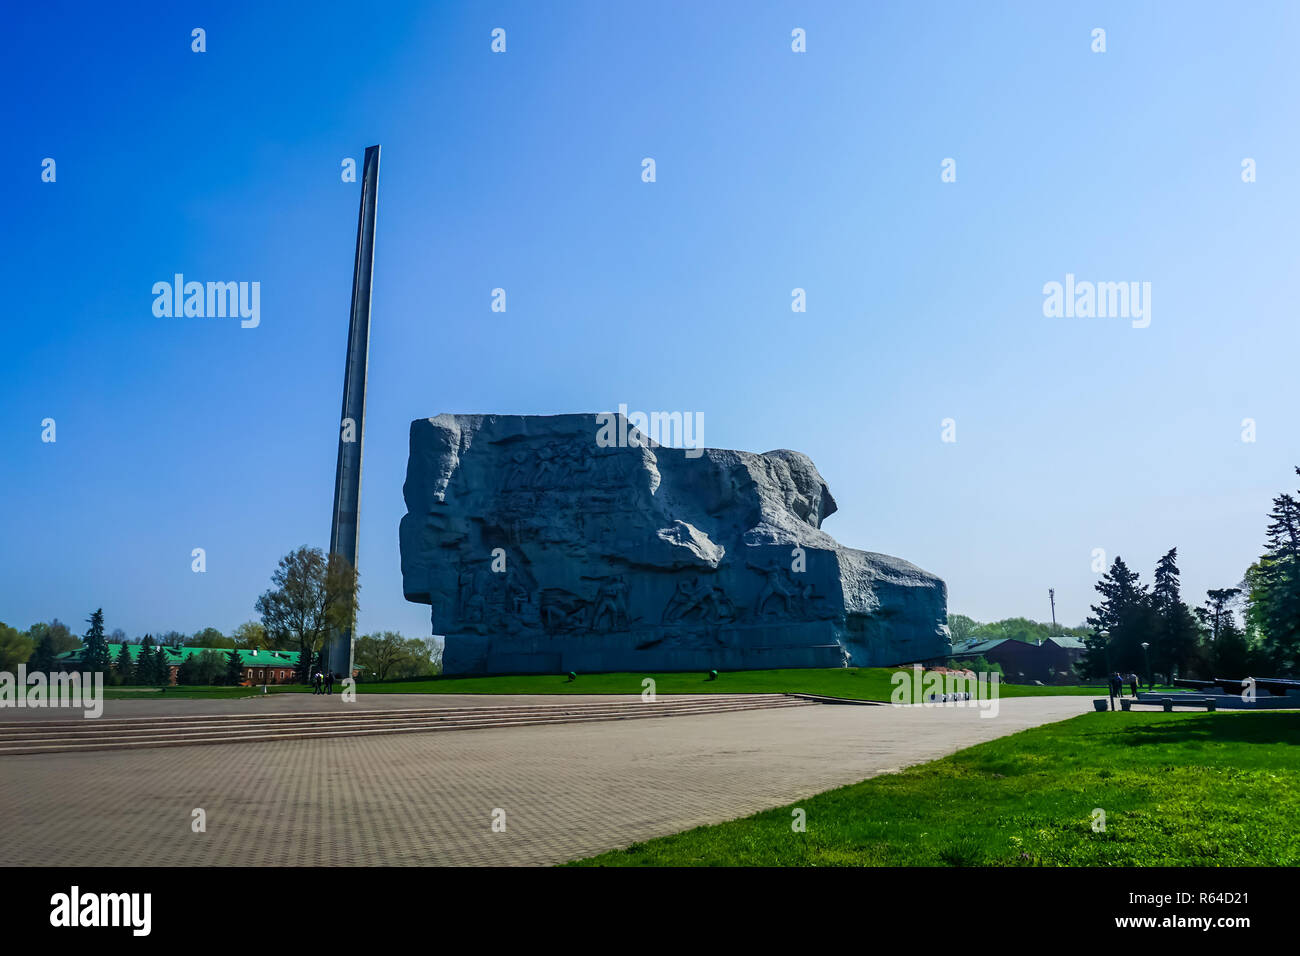 Brest Fortress Hero Complex Obelisk Rock with Carved Soldiers - Stock Image